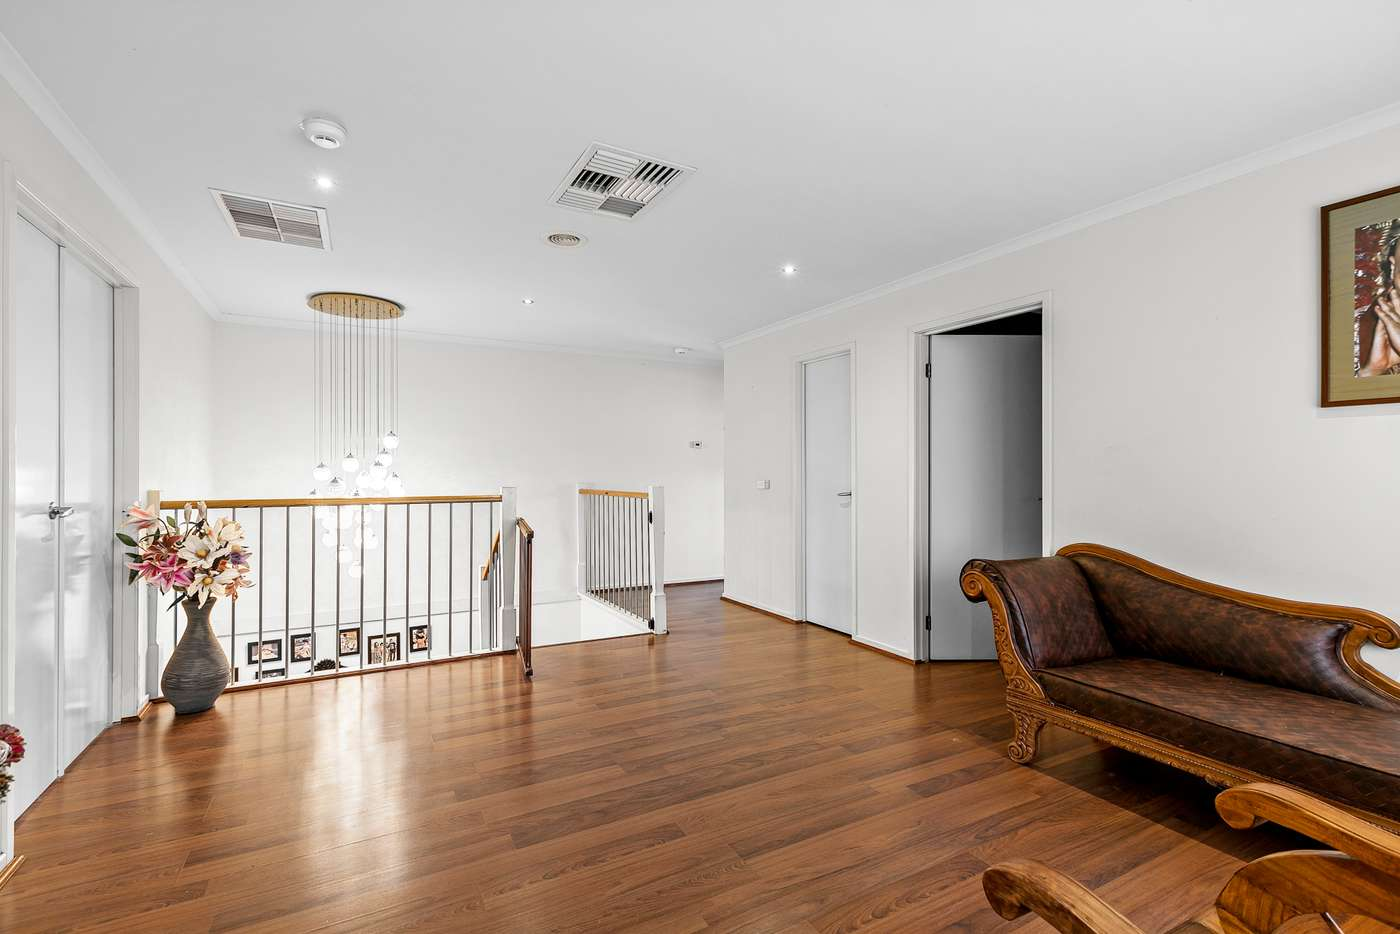 Sixth view of Homely house listing, 53 Middle Park Drive, Sanctuary Lakes VIC 3030